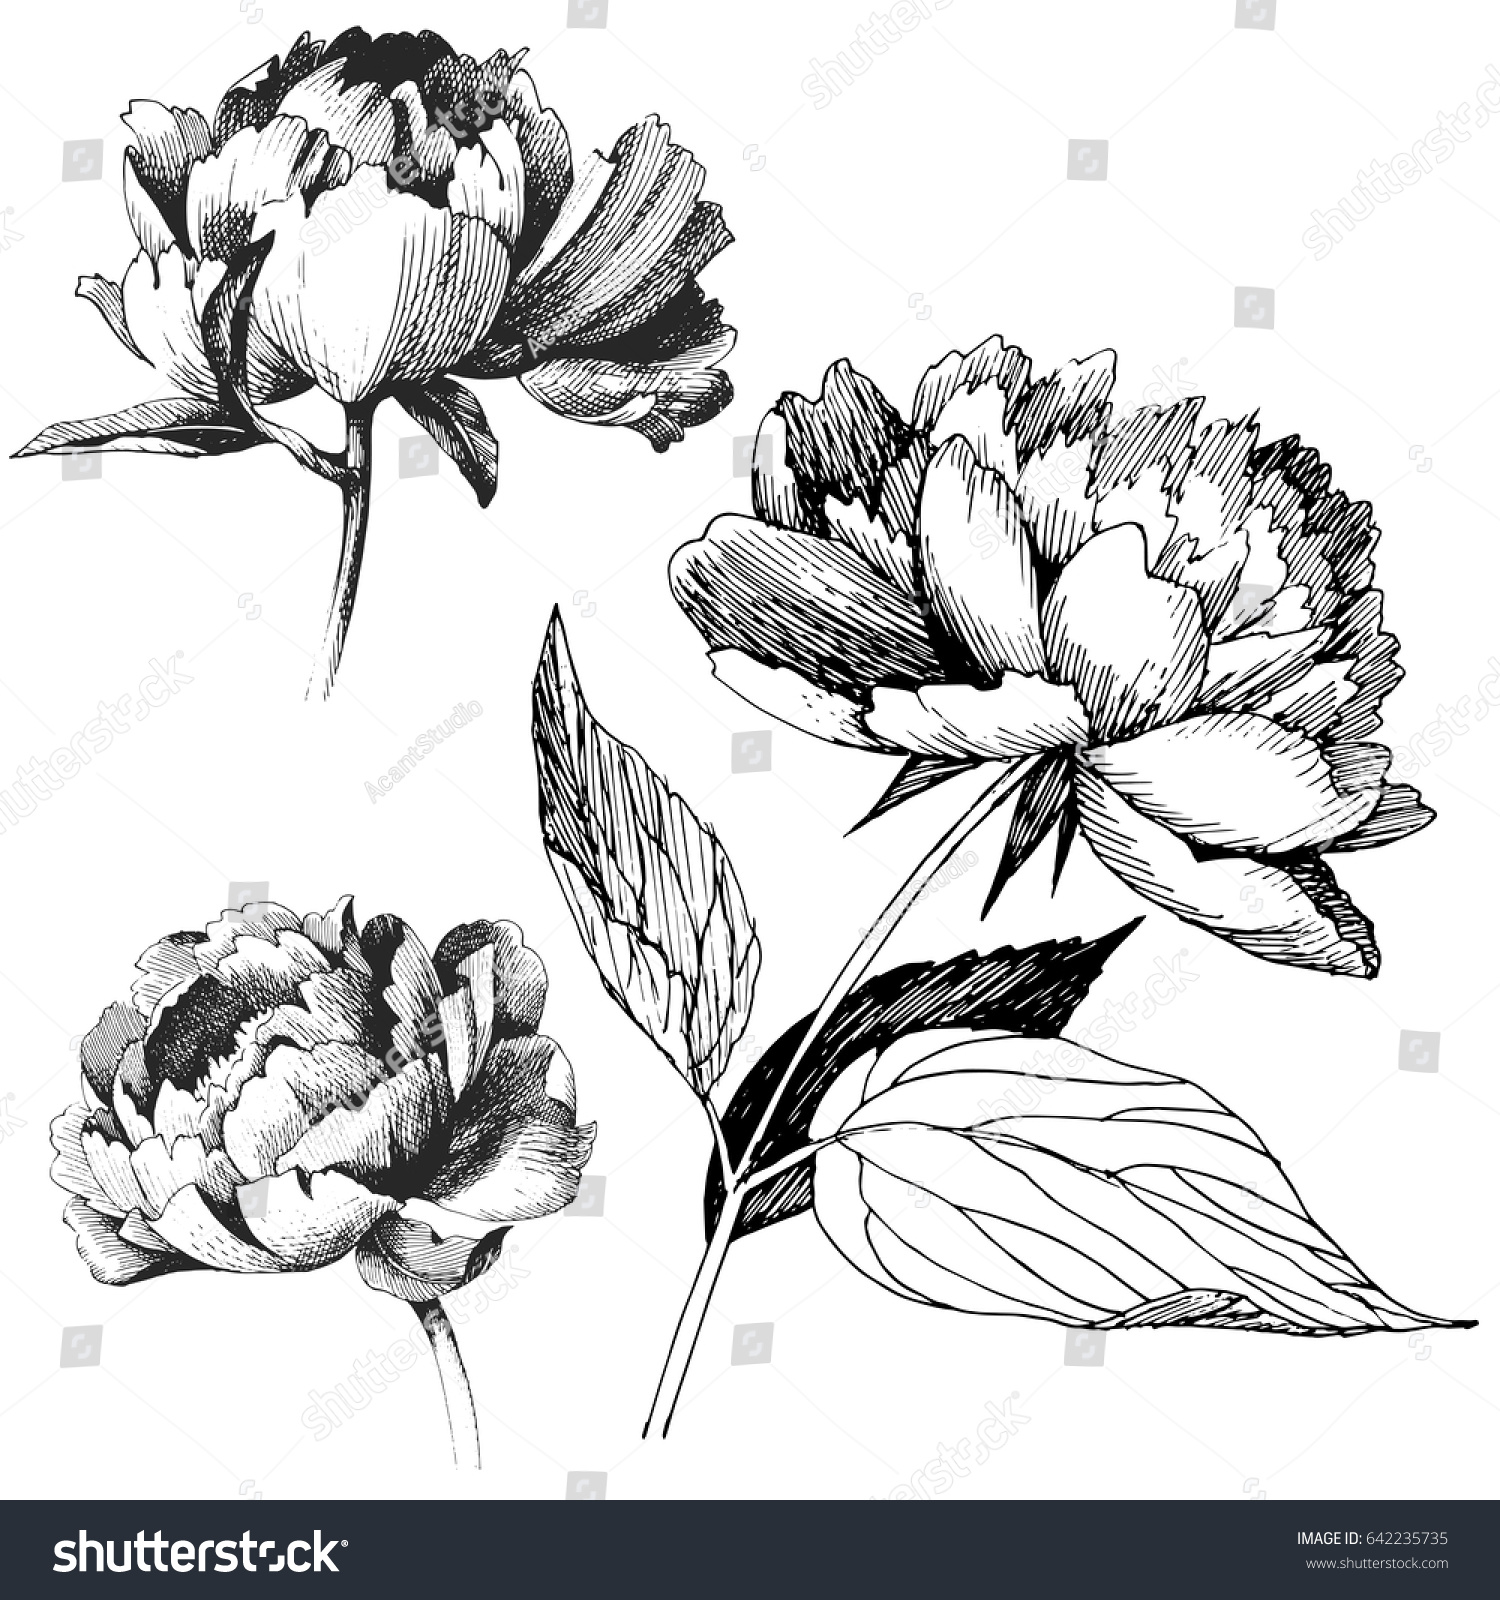 Peony Flowers Drawing Vector Illustration And Line Art Ez Canvas